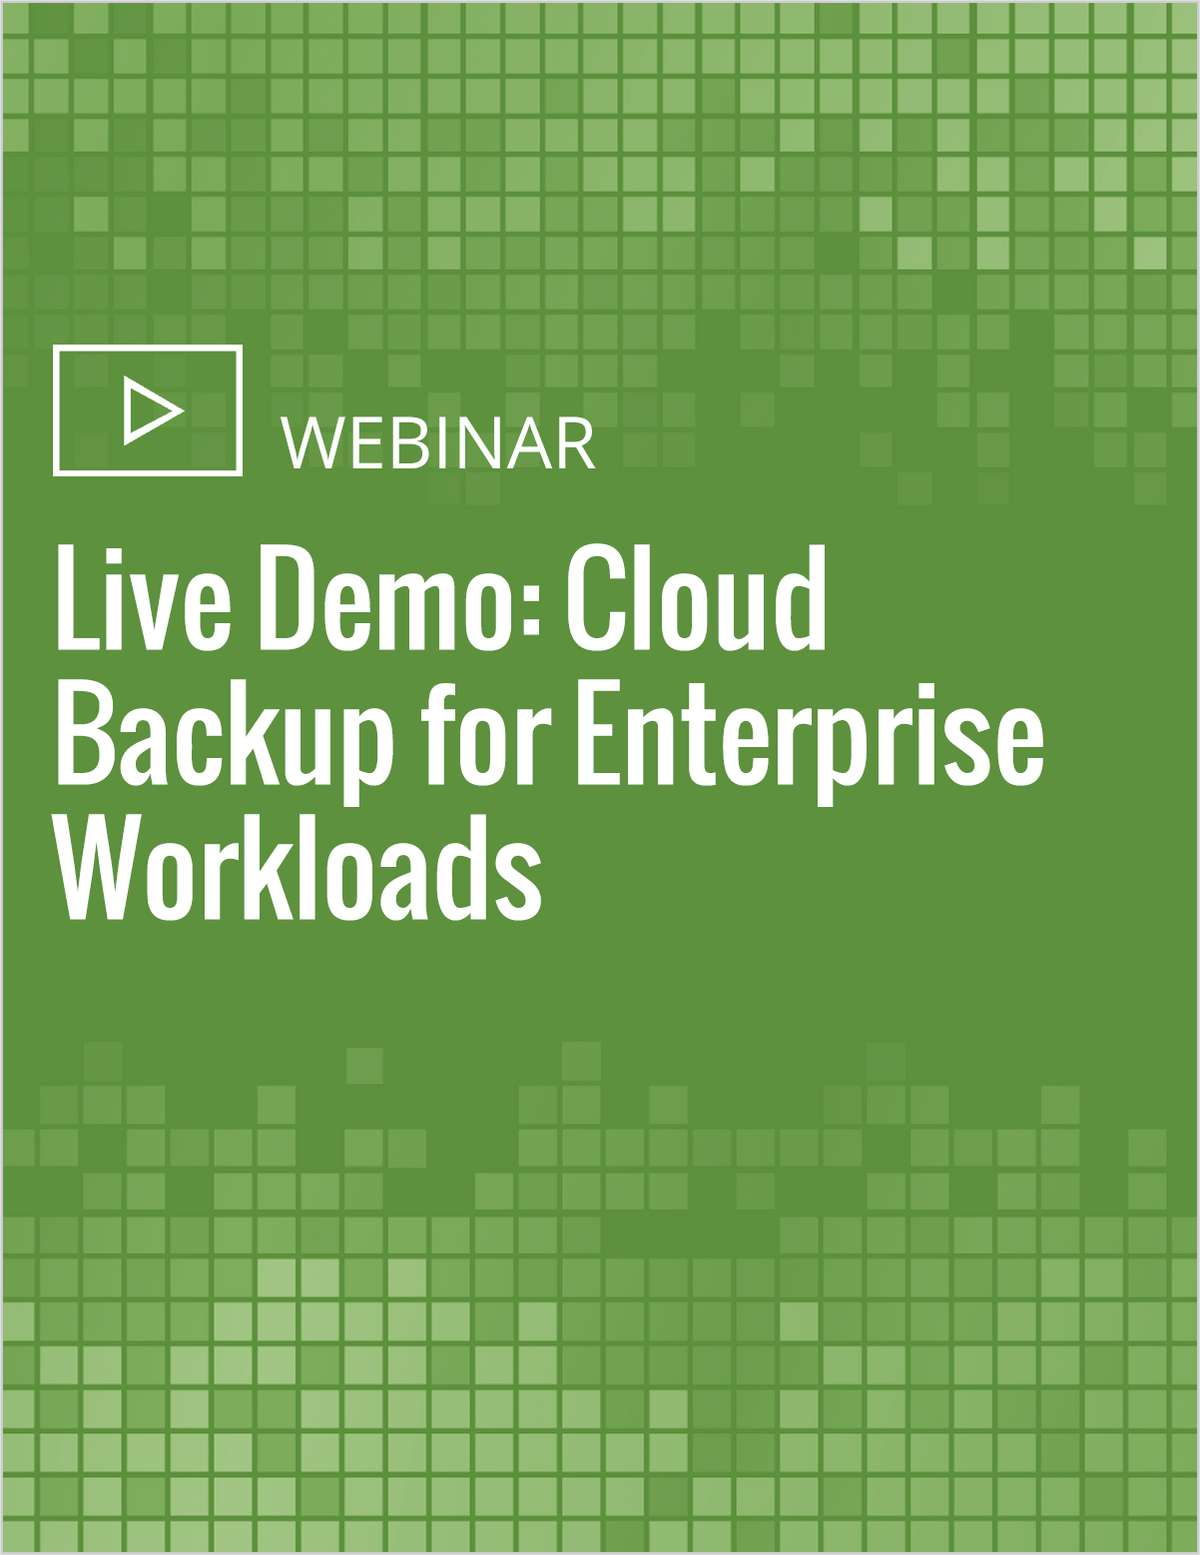 Live Demo: Cloud Backup for Enterprise Workloads